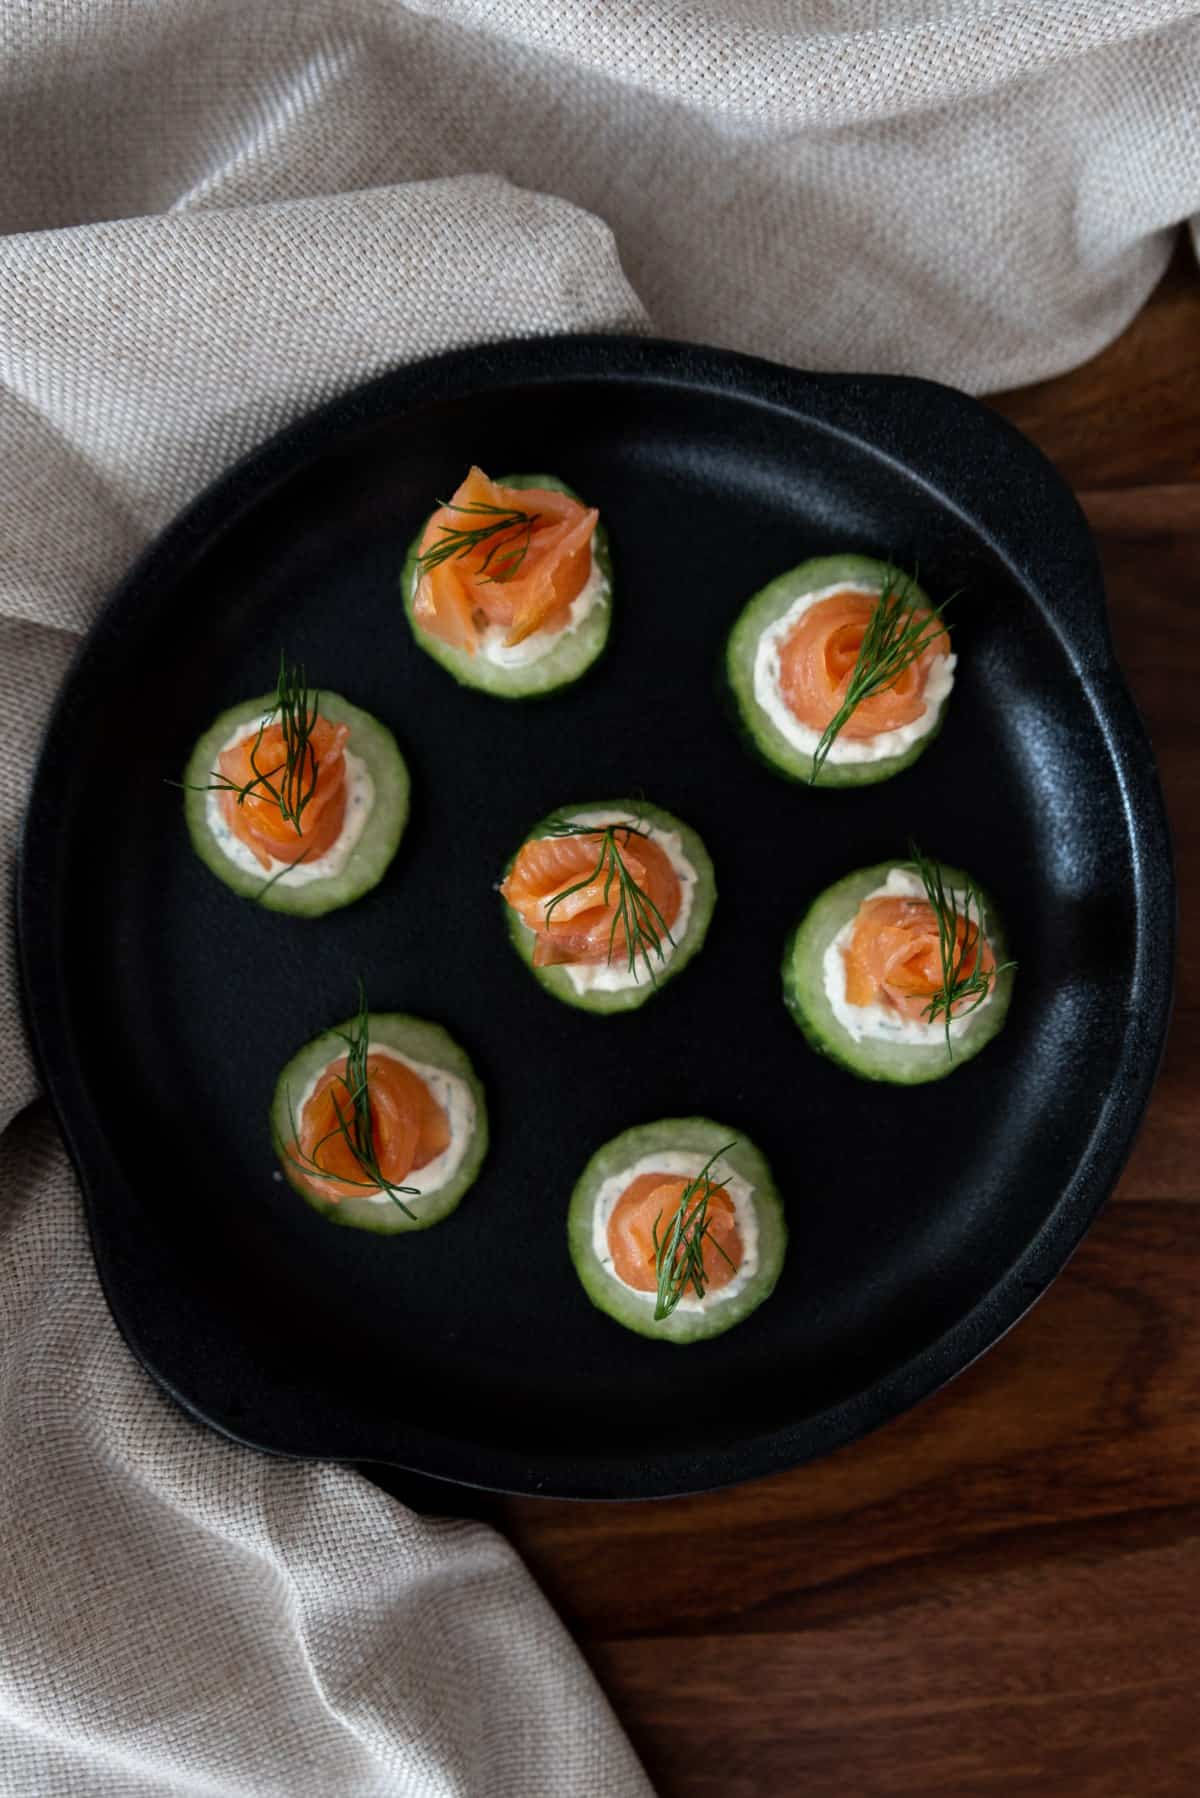 cucumber bites in a round black cast iron dish, sitting on a timber table, with a beige napkin around the edge.